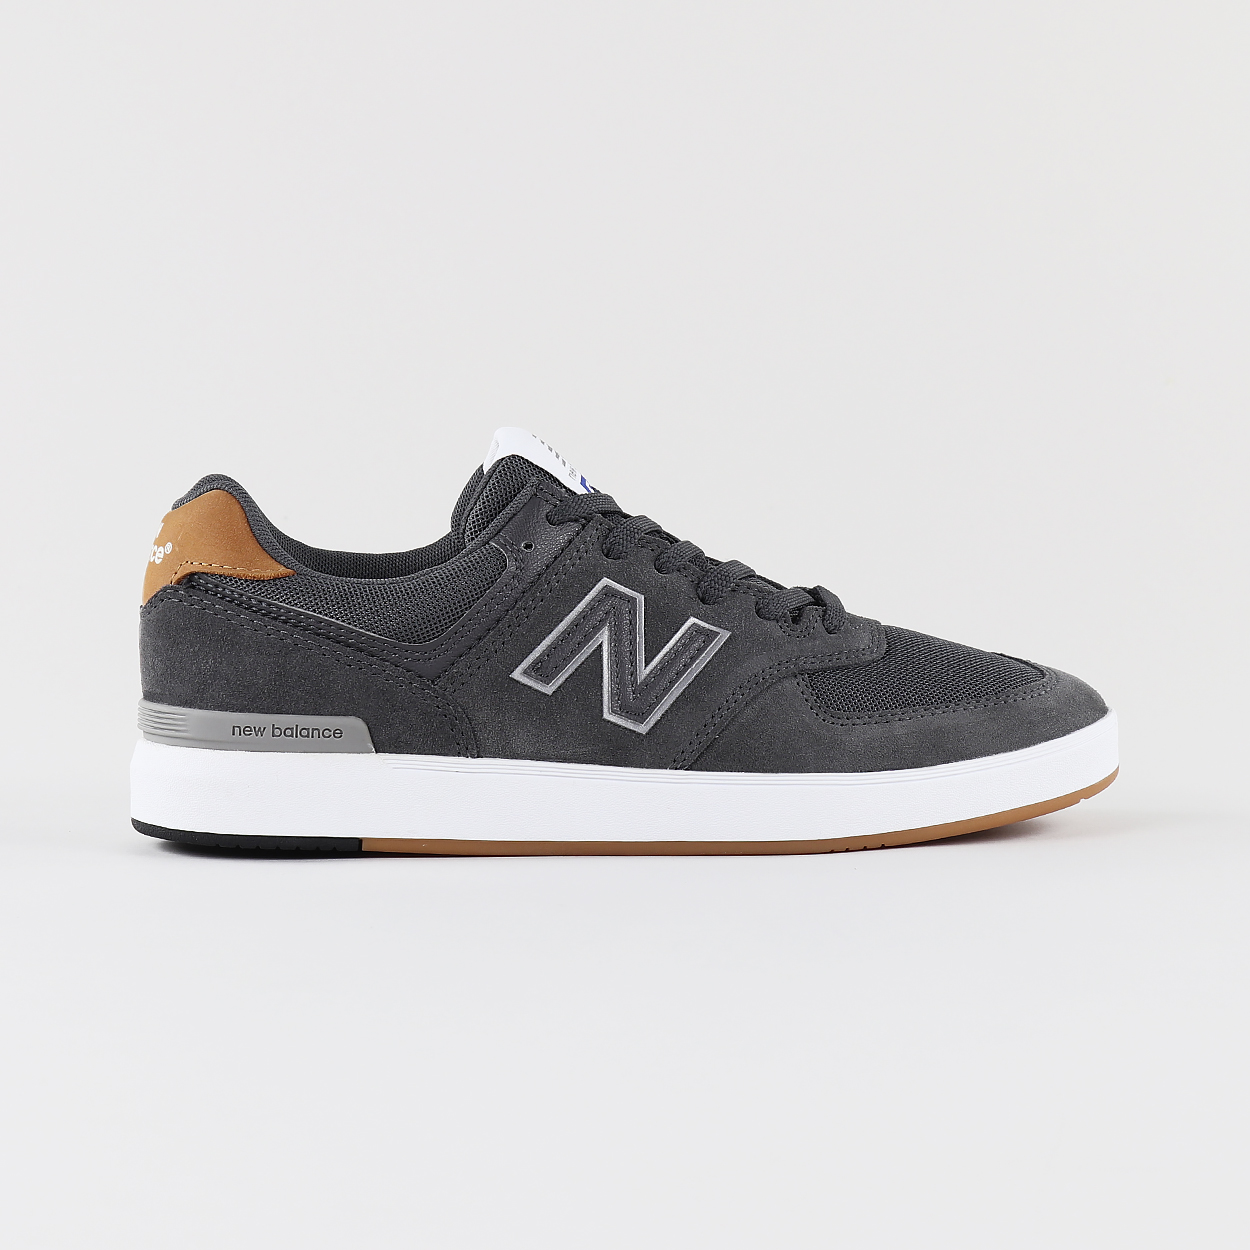 76379ee843 New Balance Numeric Mens Skateboard 574 Shoes Trainers Grey Brown £65.00